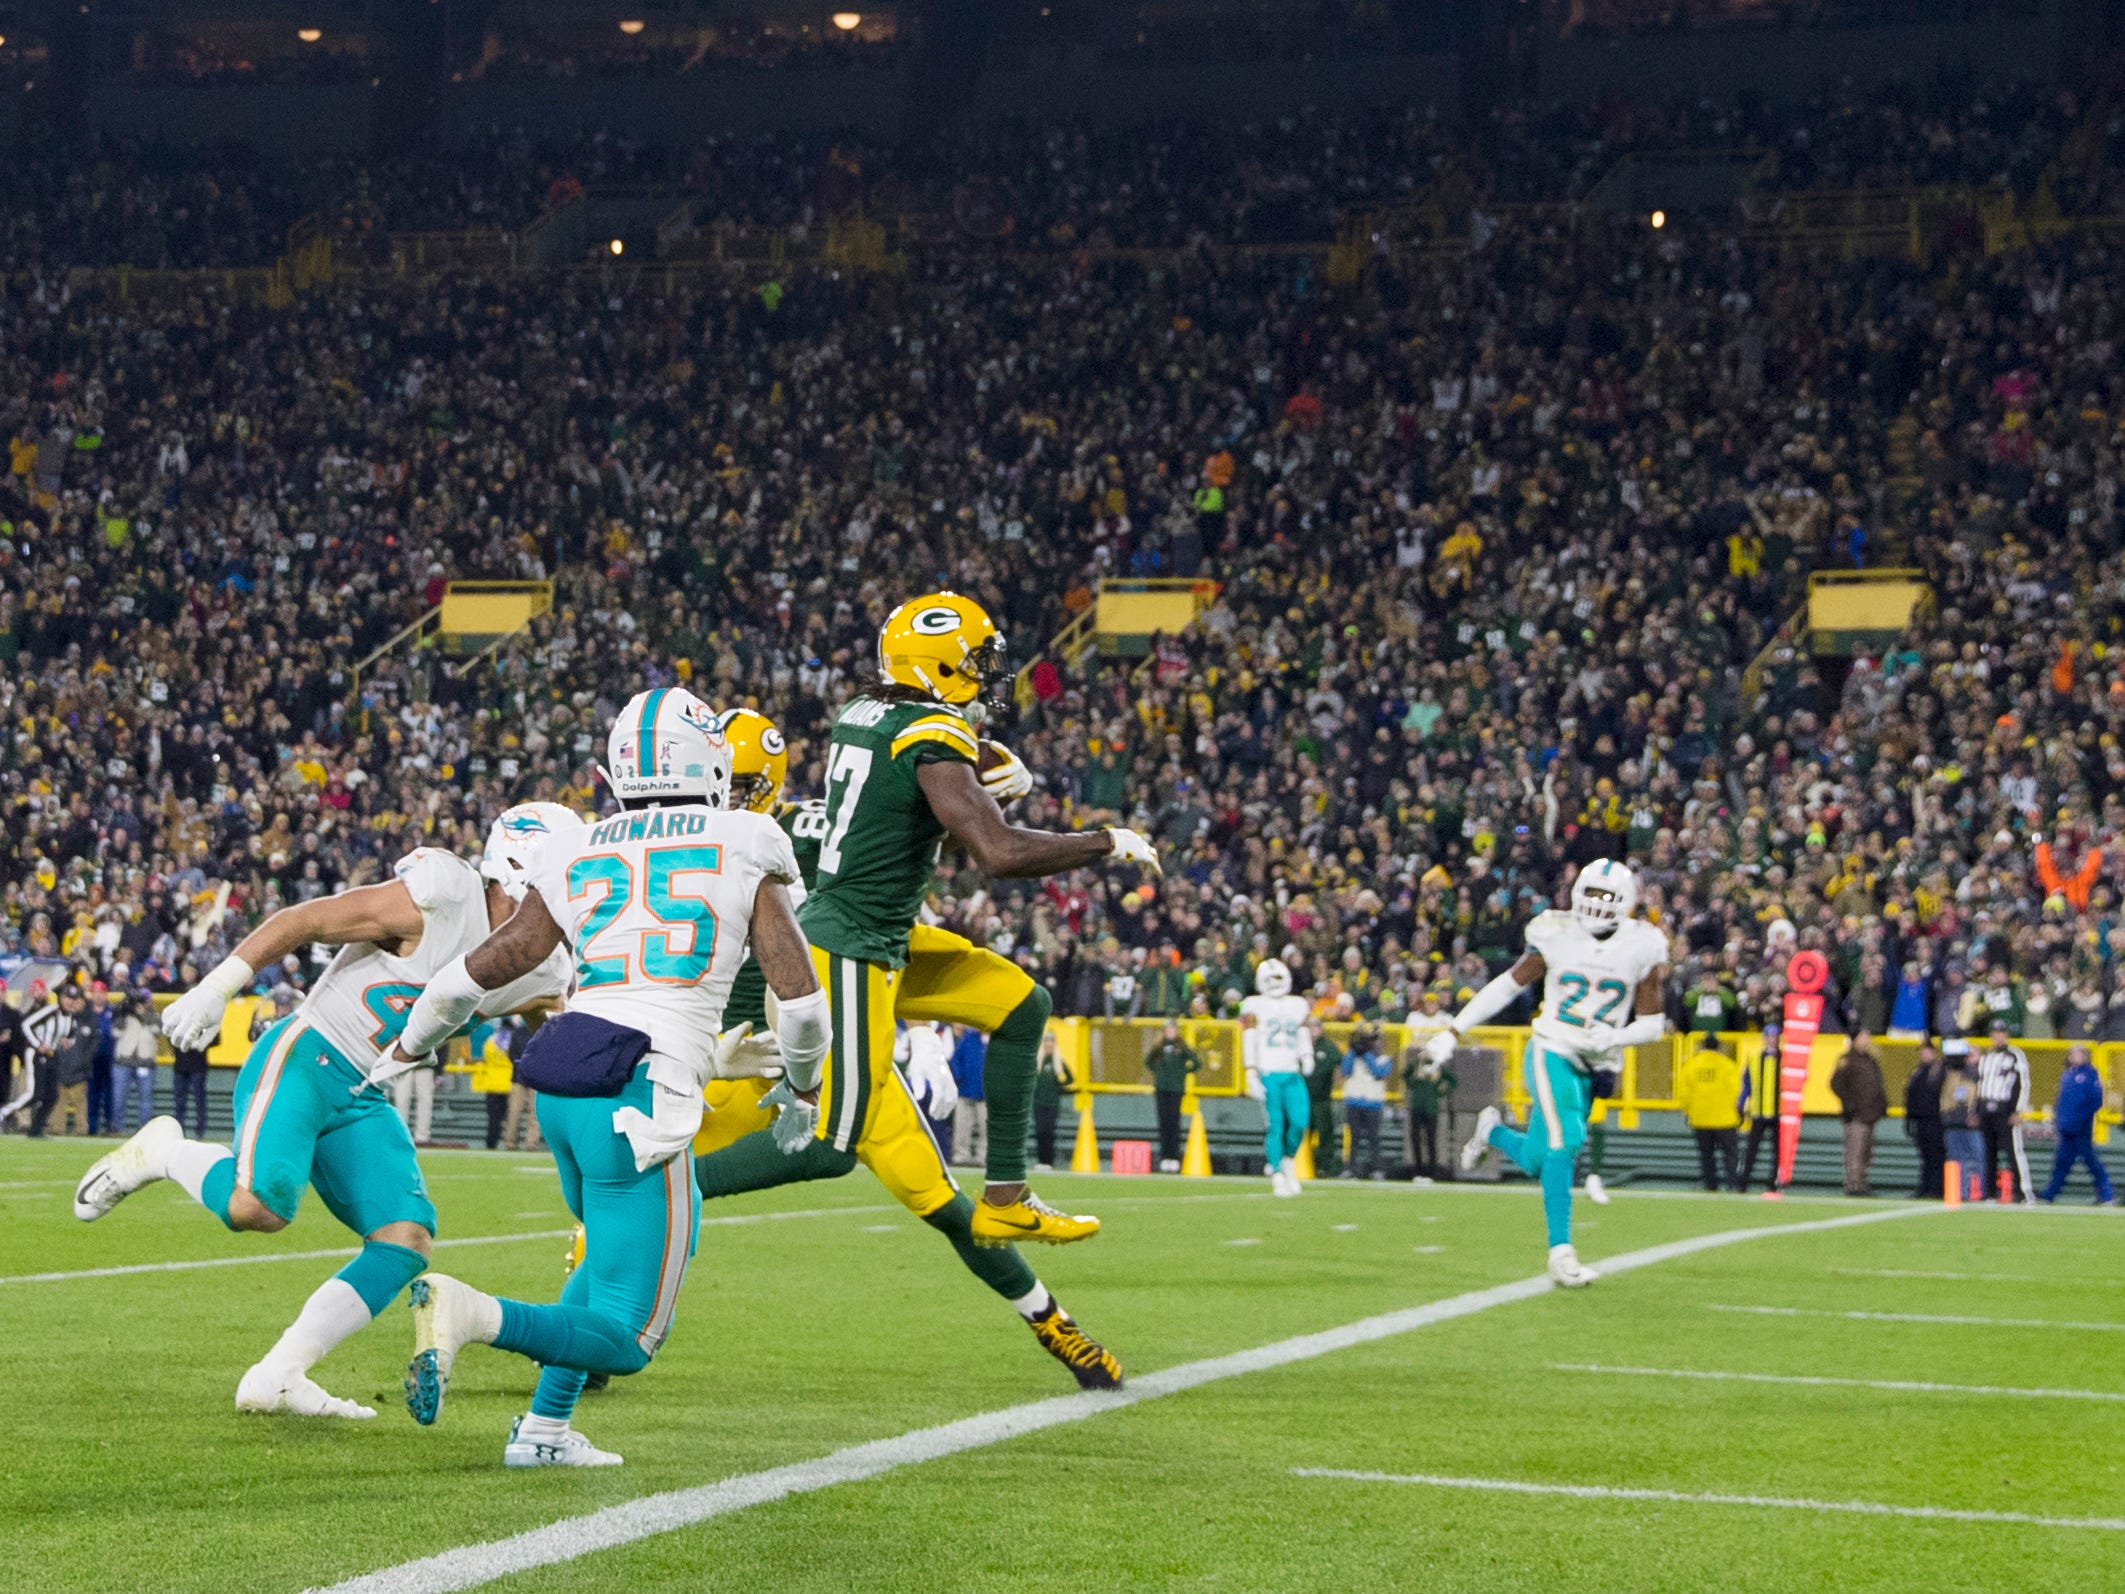 Green Bay Packers wide receiver Davante Adams scores a touchdown pass during the third quarter against the Miami Dolphins at Lambeau Field.